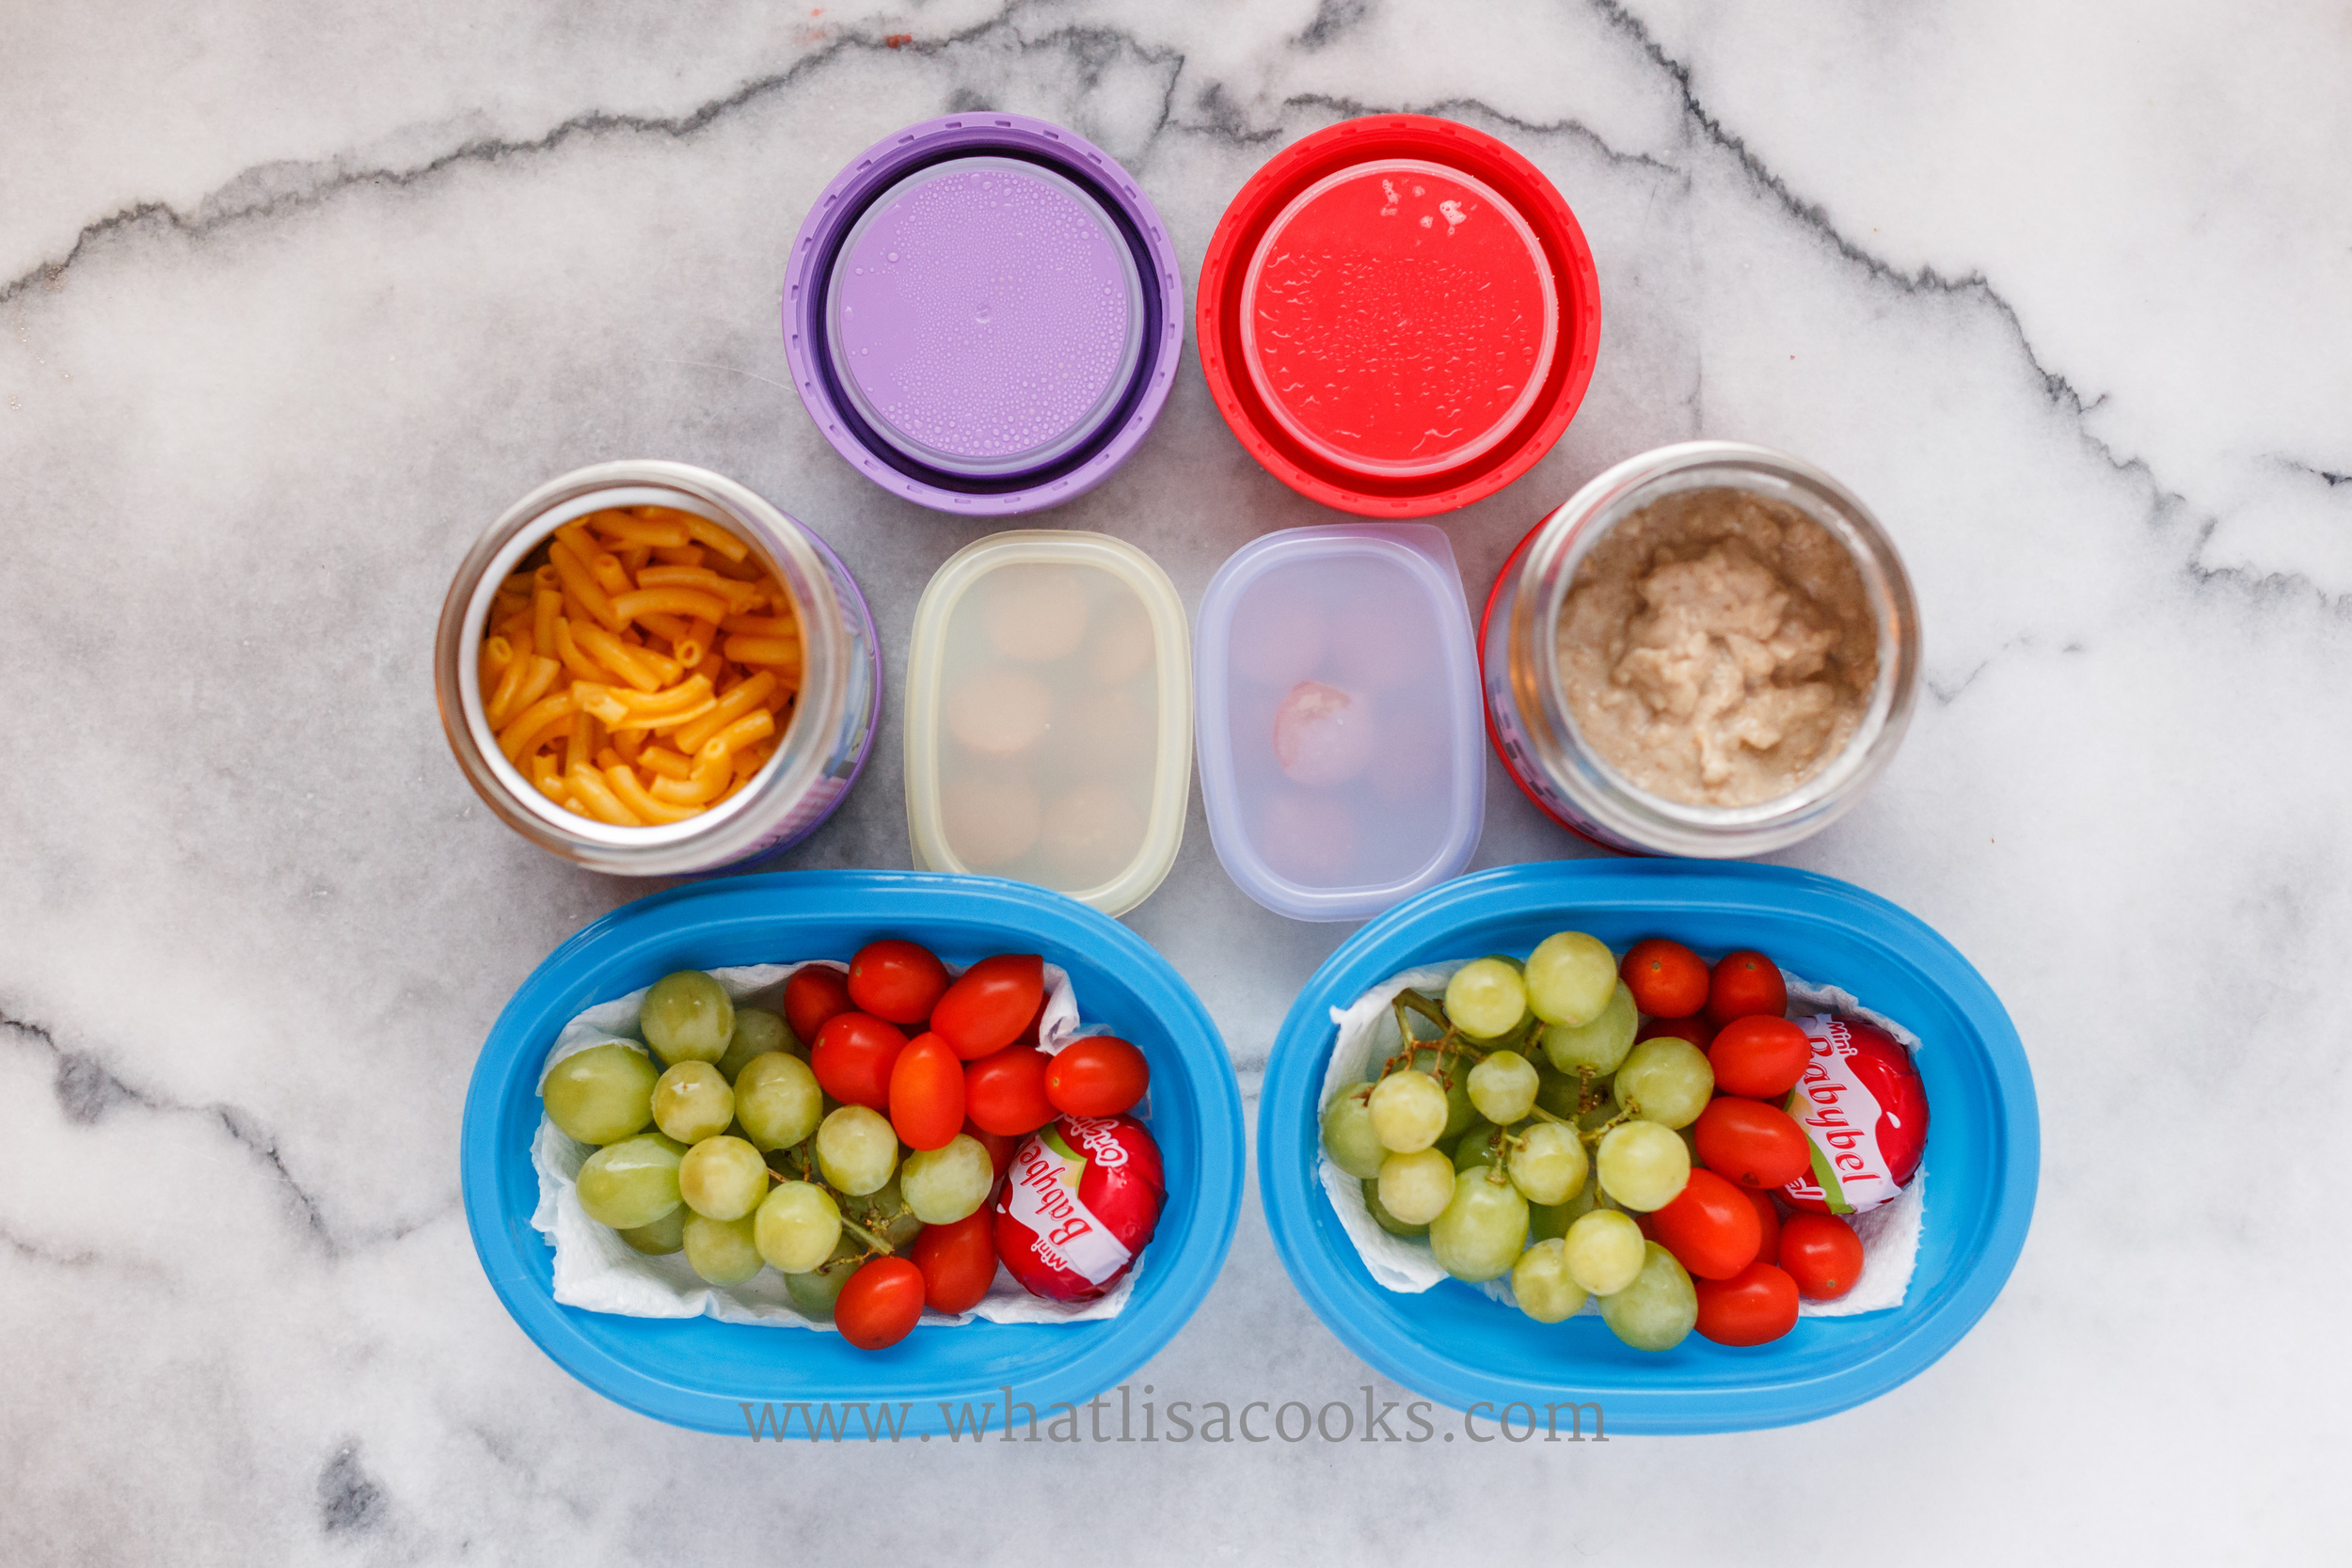 One has leftover macaroni and cheese, the other has my homemade instant oatmeal. On the side they have grapes, tomatoes, cheese, and a few bites of hot dog. They ate nearly every bite.